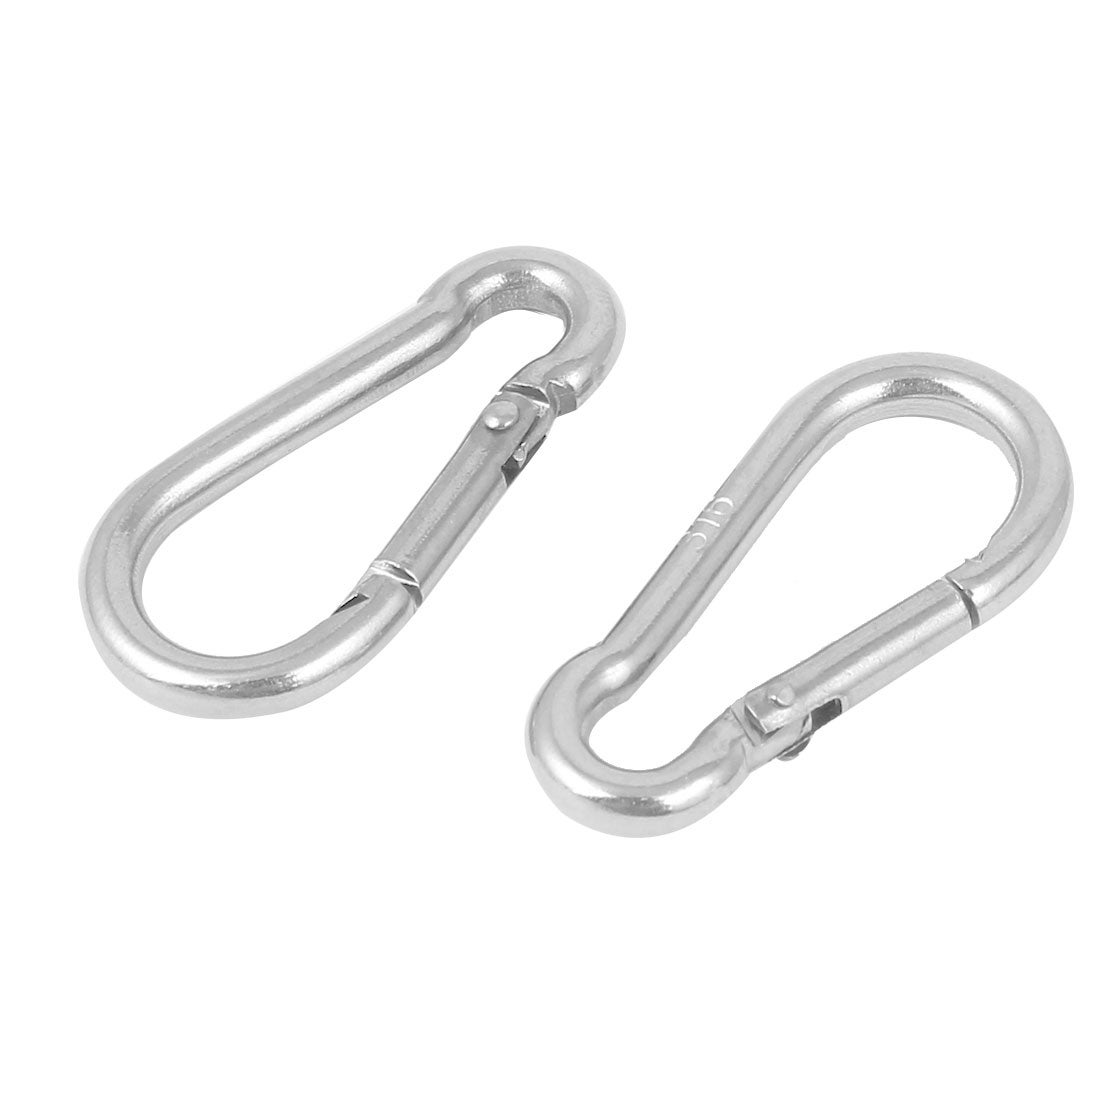 Shop 304 Stainless Steel Spring Snap Hook Carabiner Silver Tone 2pcs Silver Tone Overstock 18468782